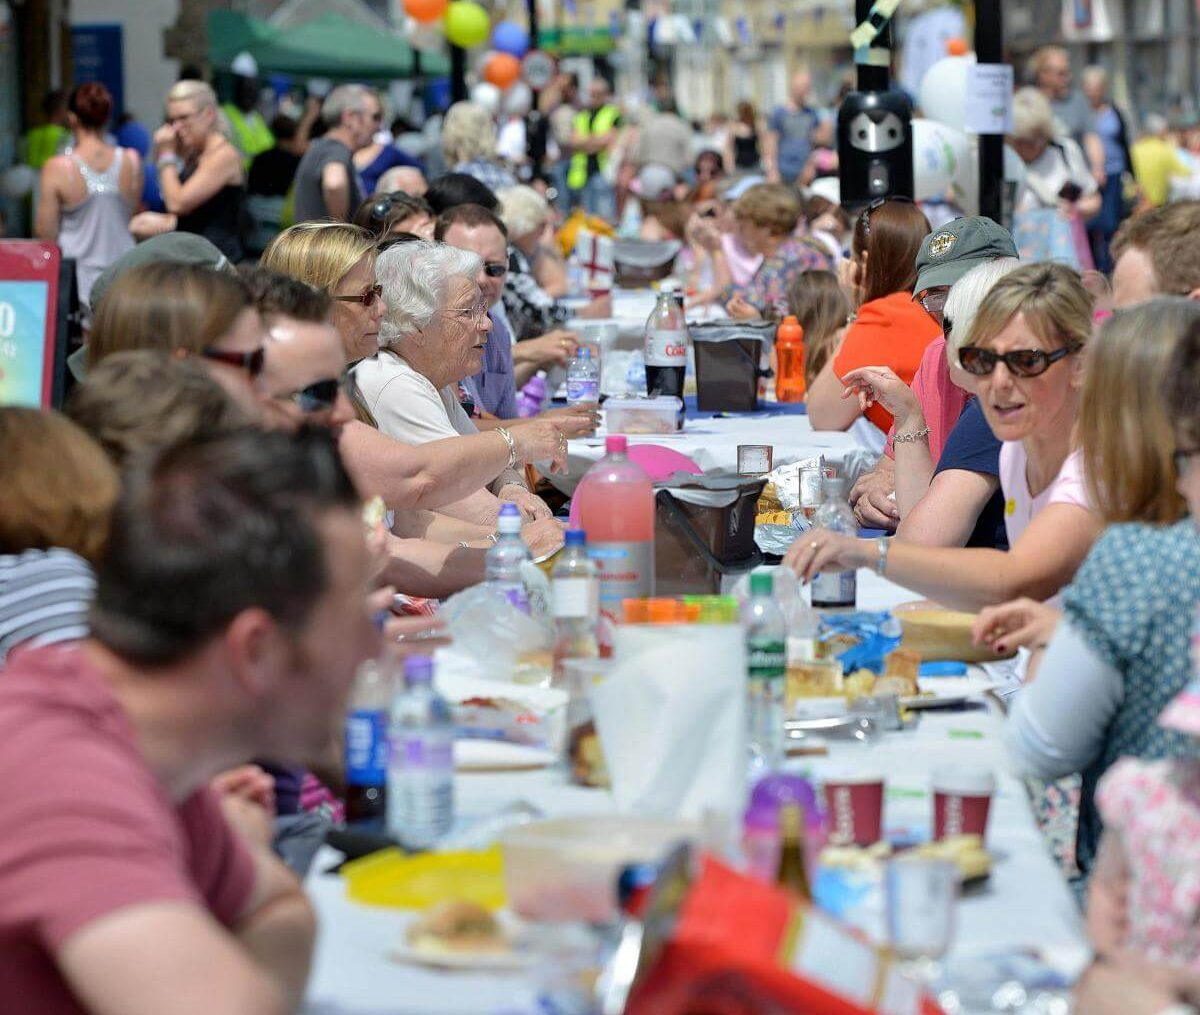 People sharing a long table at a festival